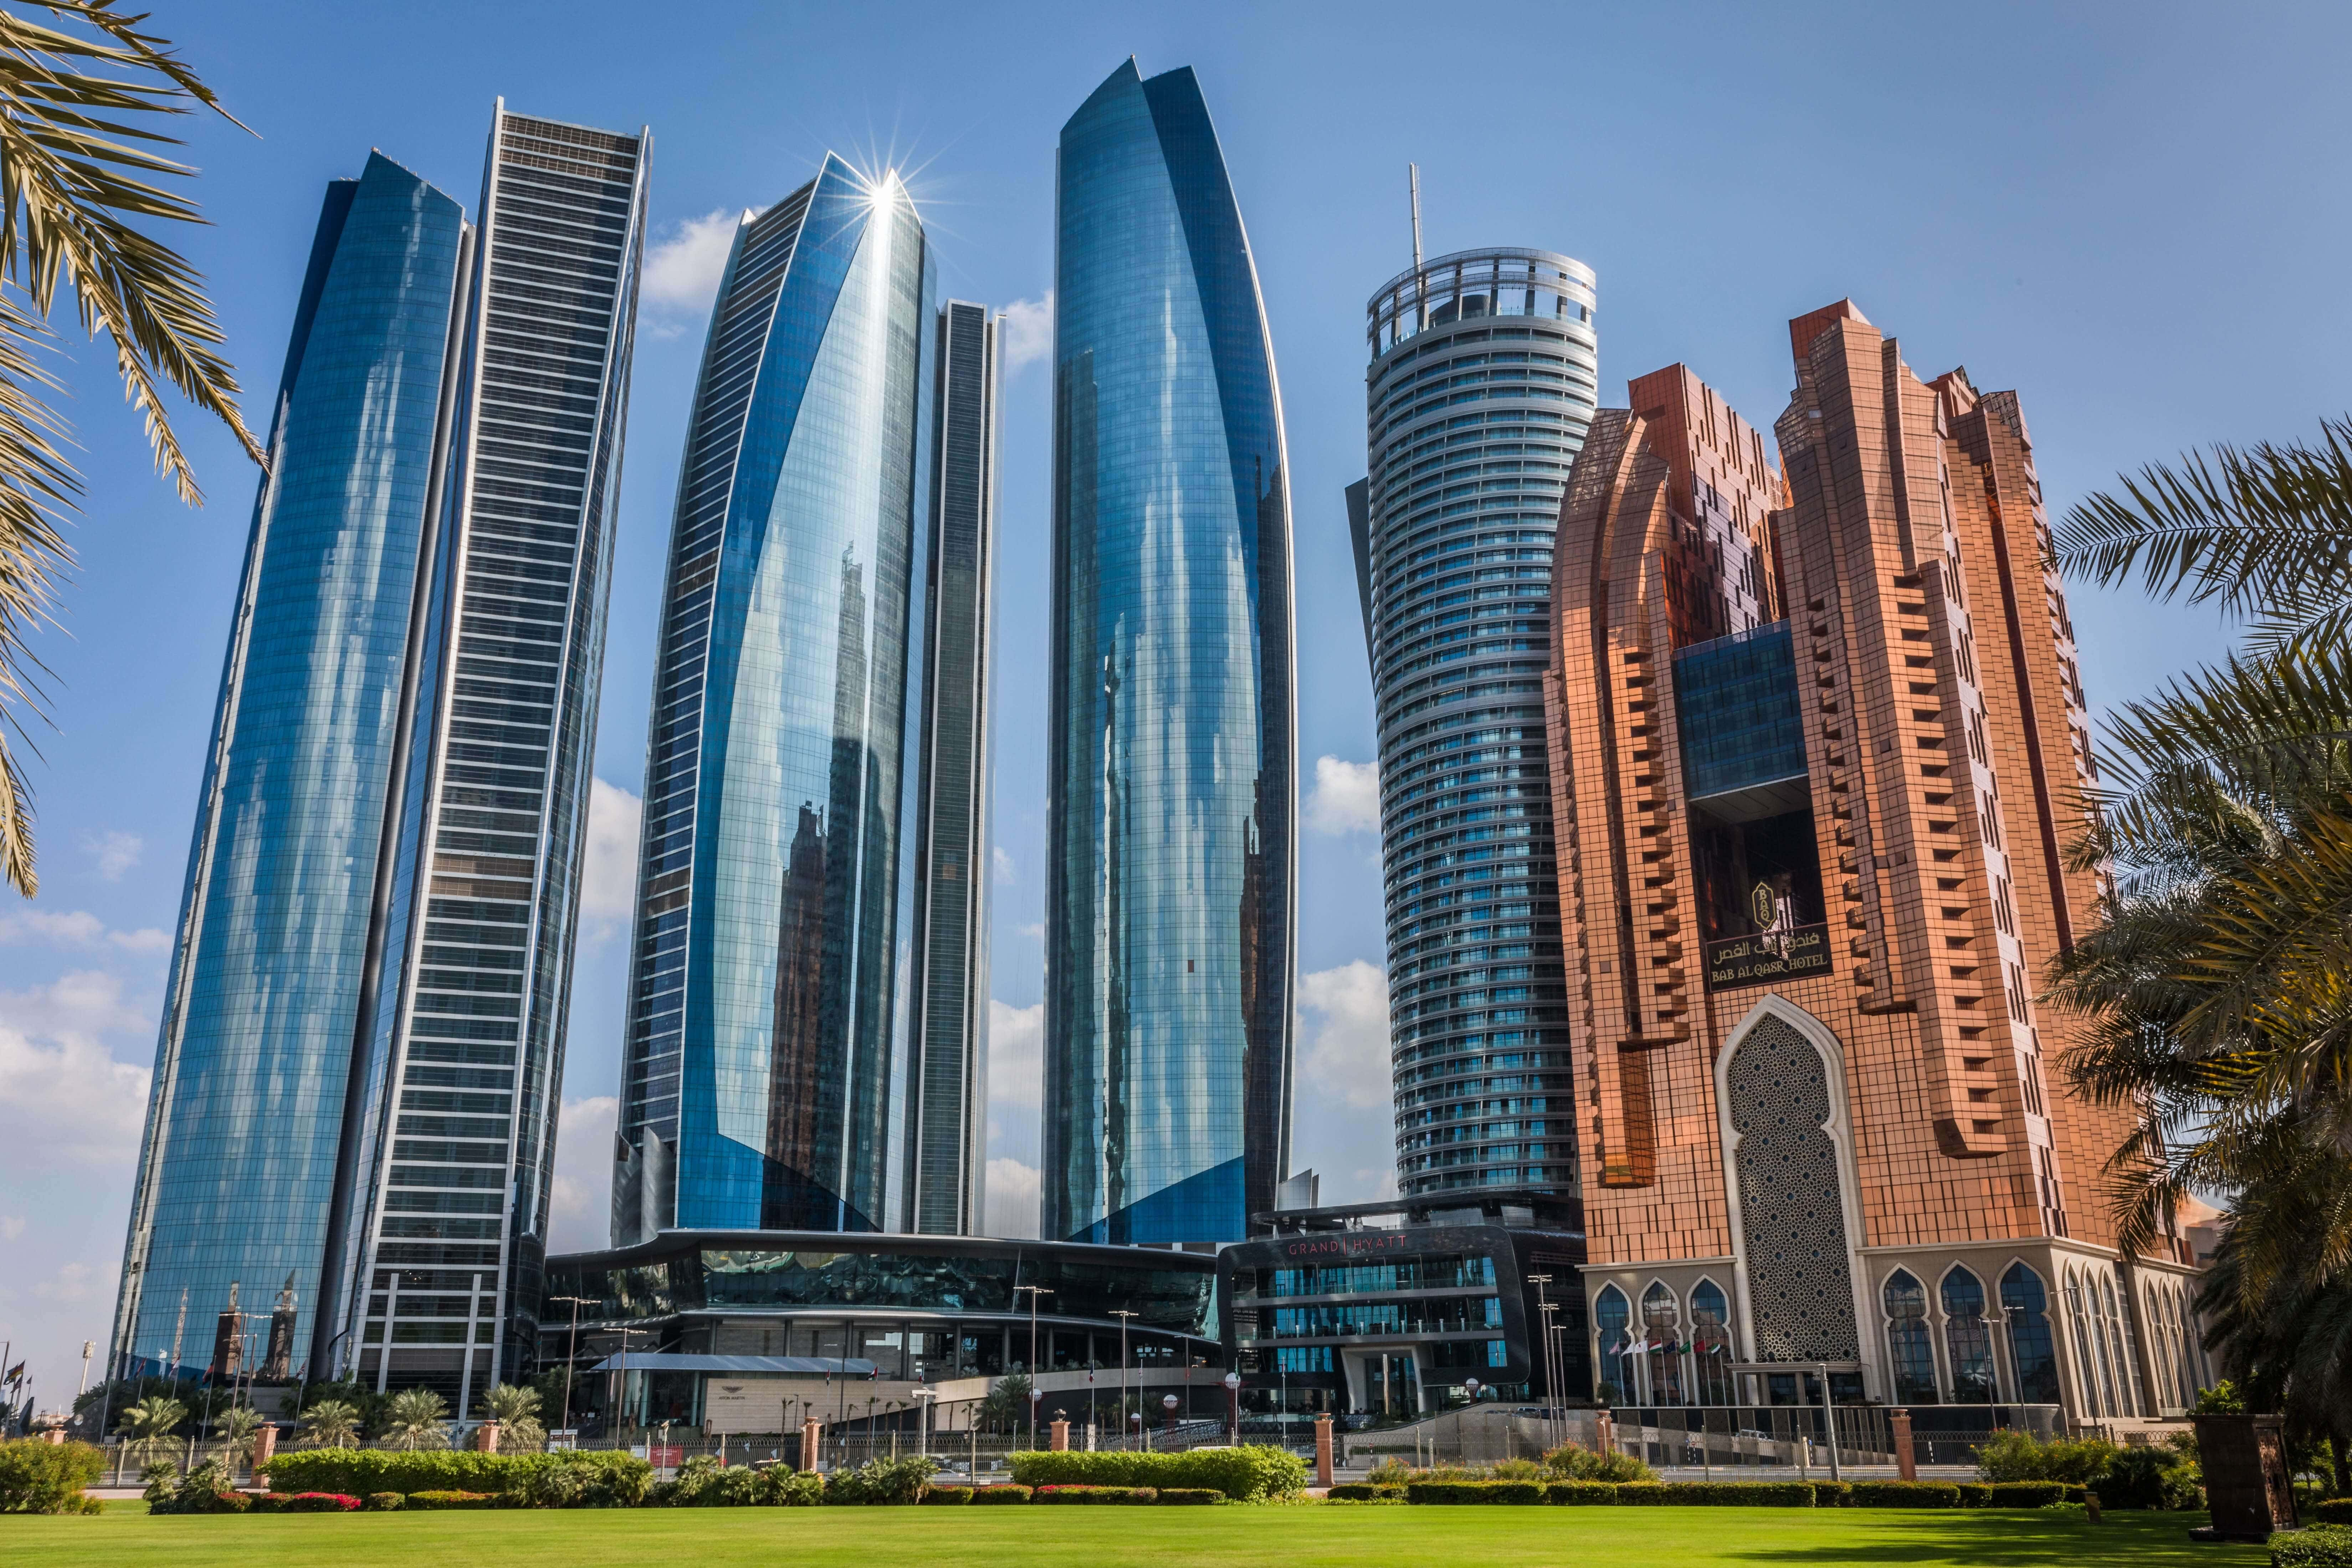 Full Day Abu Dhabi City Tour From Dubai - Abu Dhabi Sightseeing Tour - Travel Fube